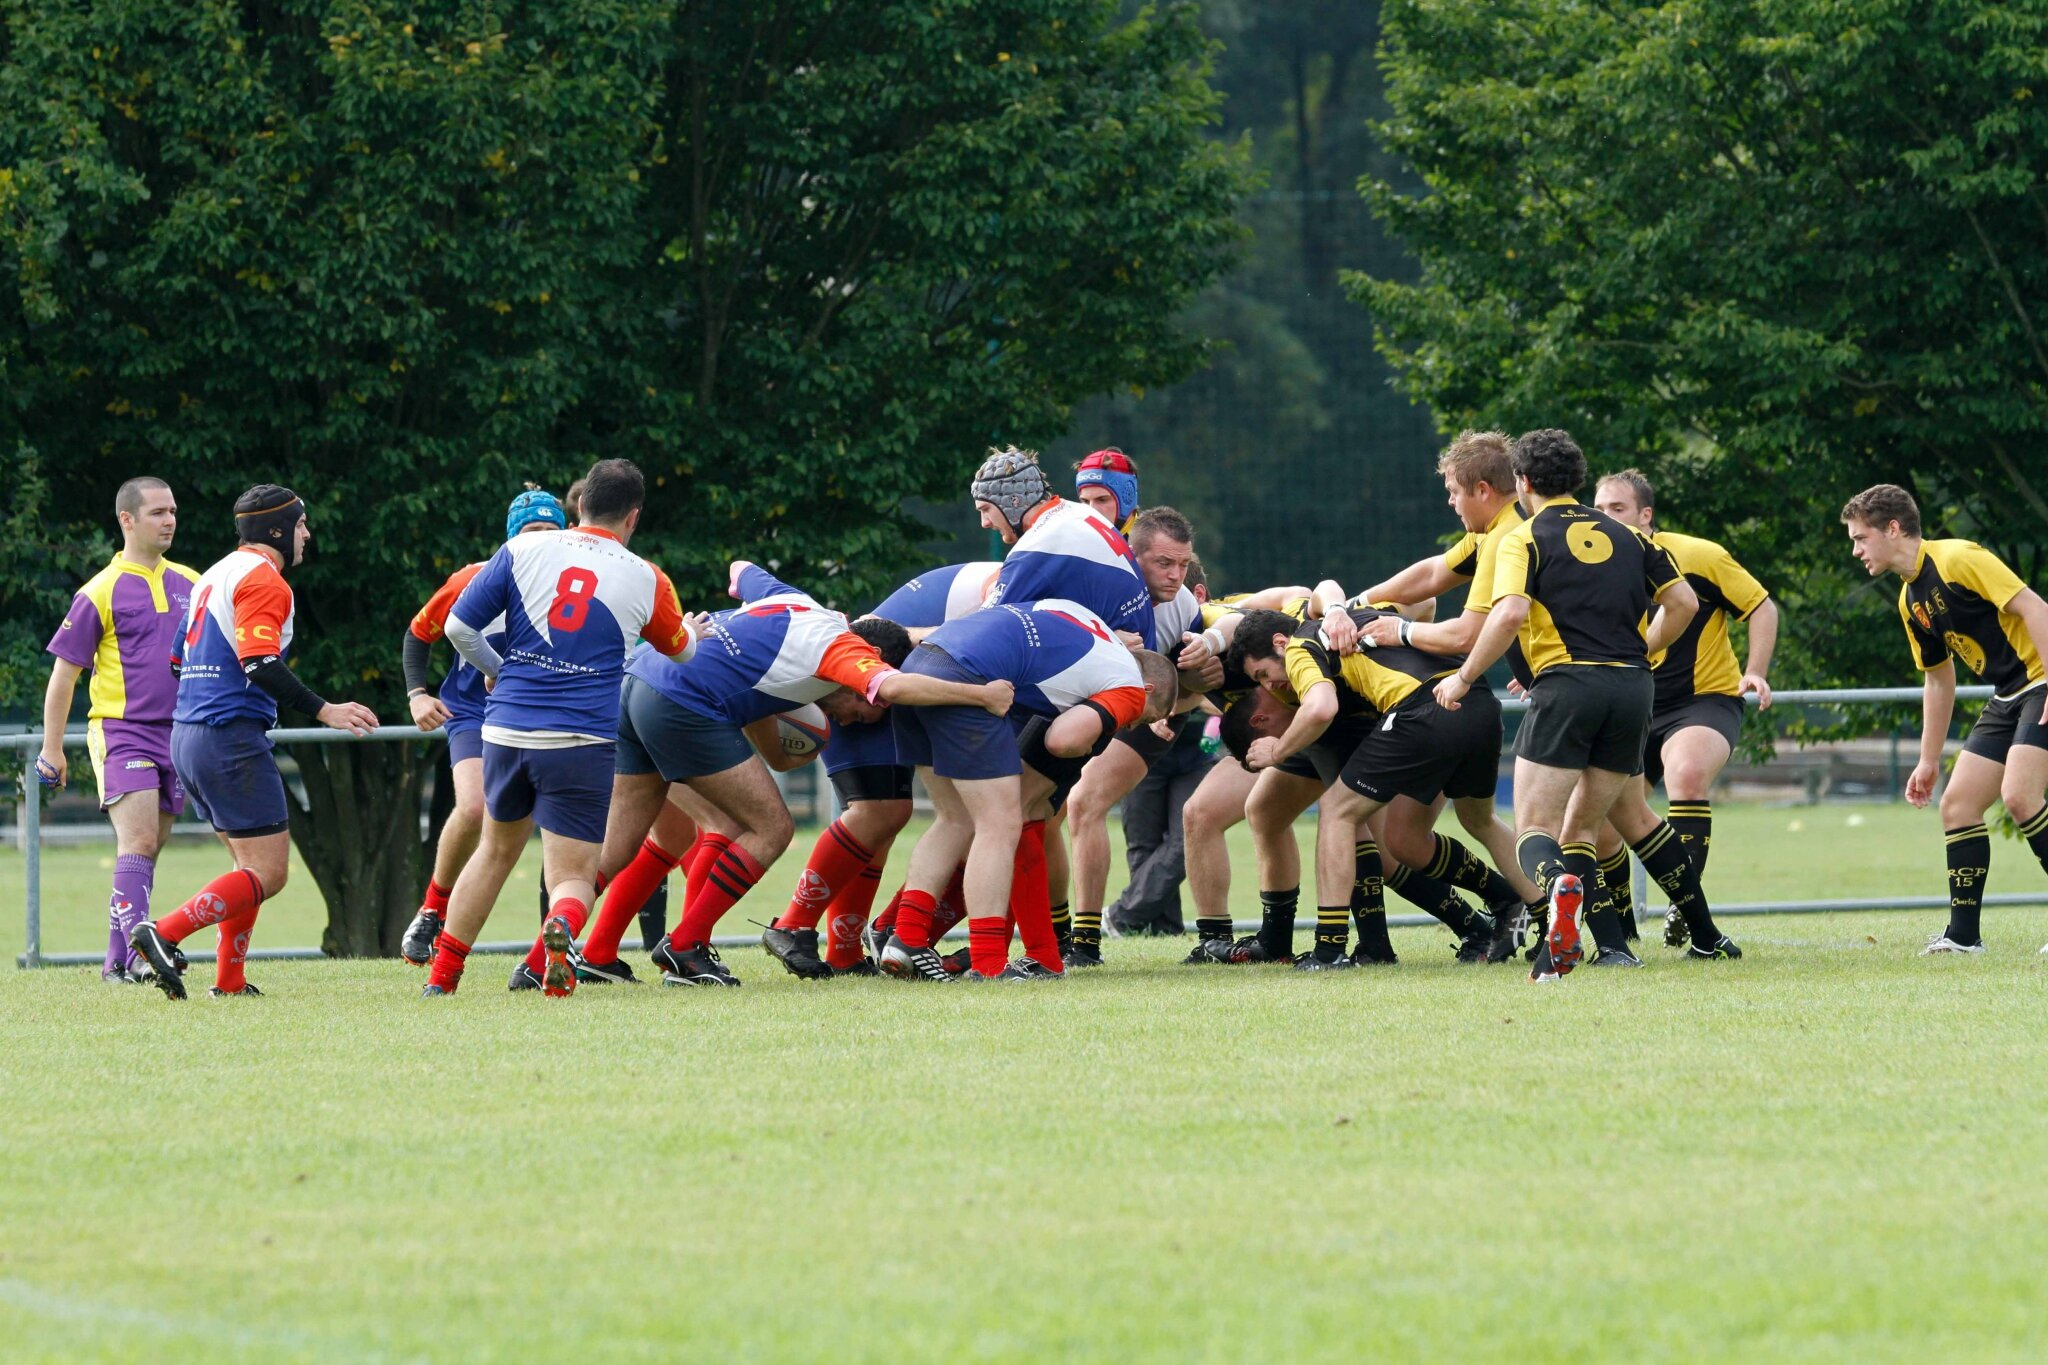 RCT-RCP15-R11